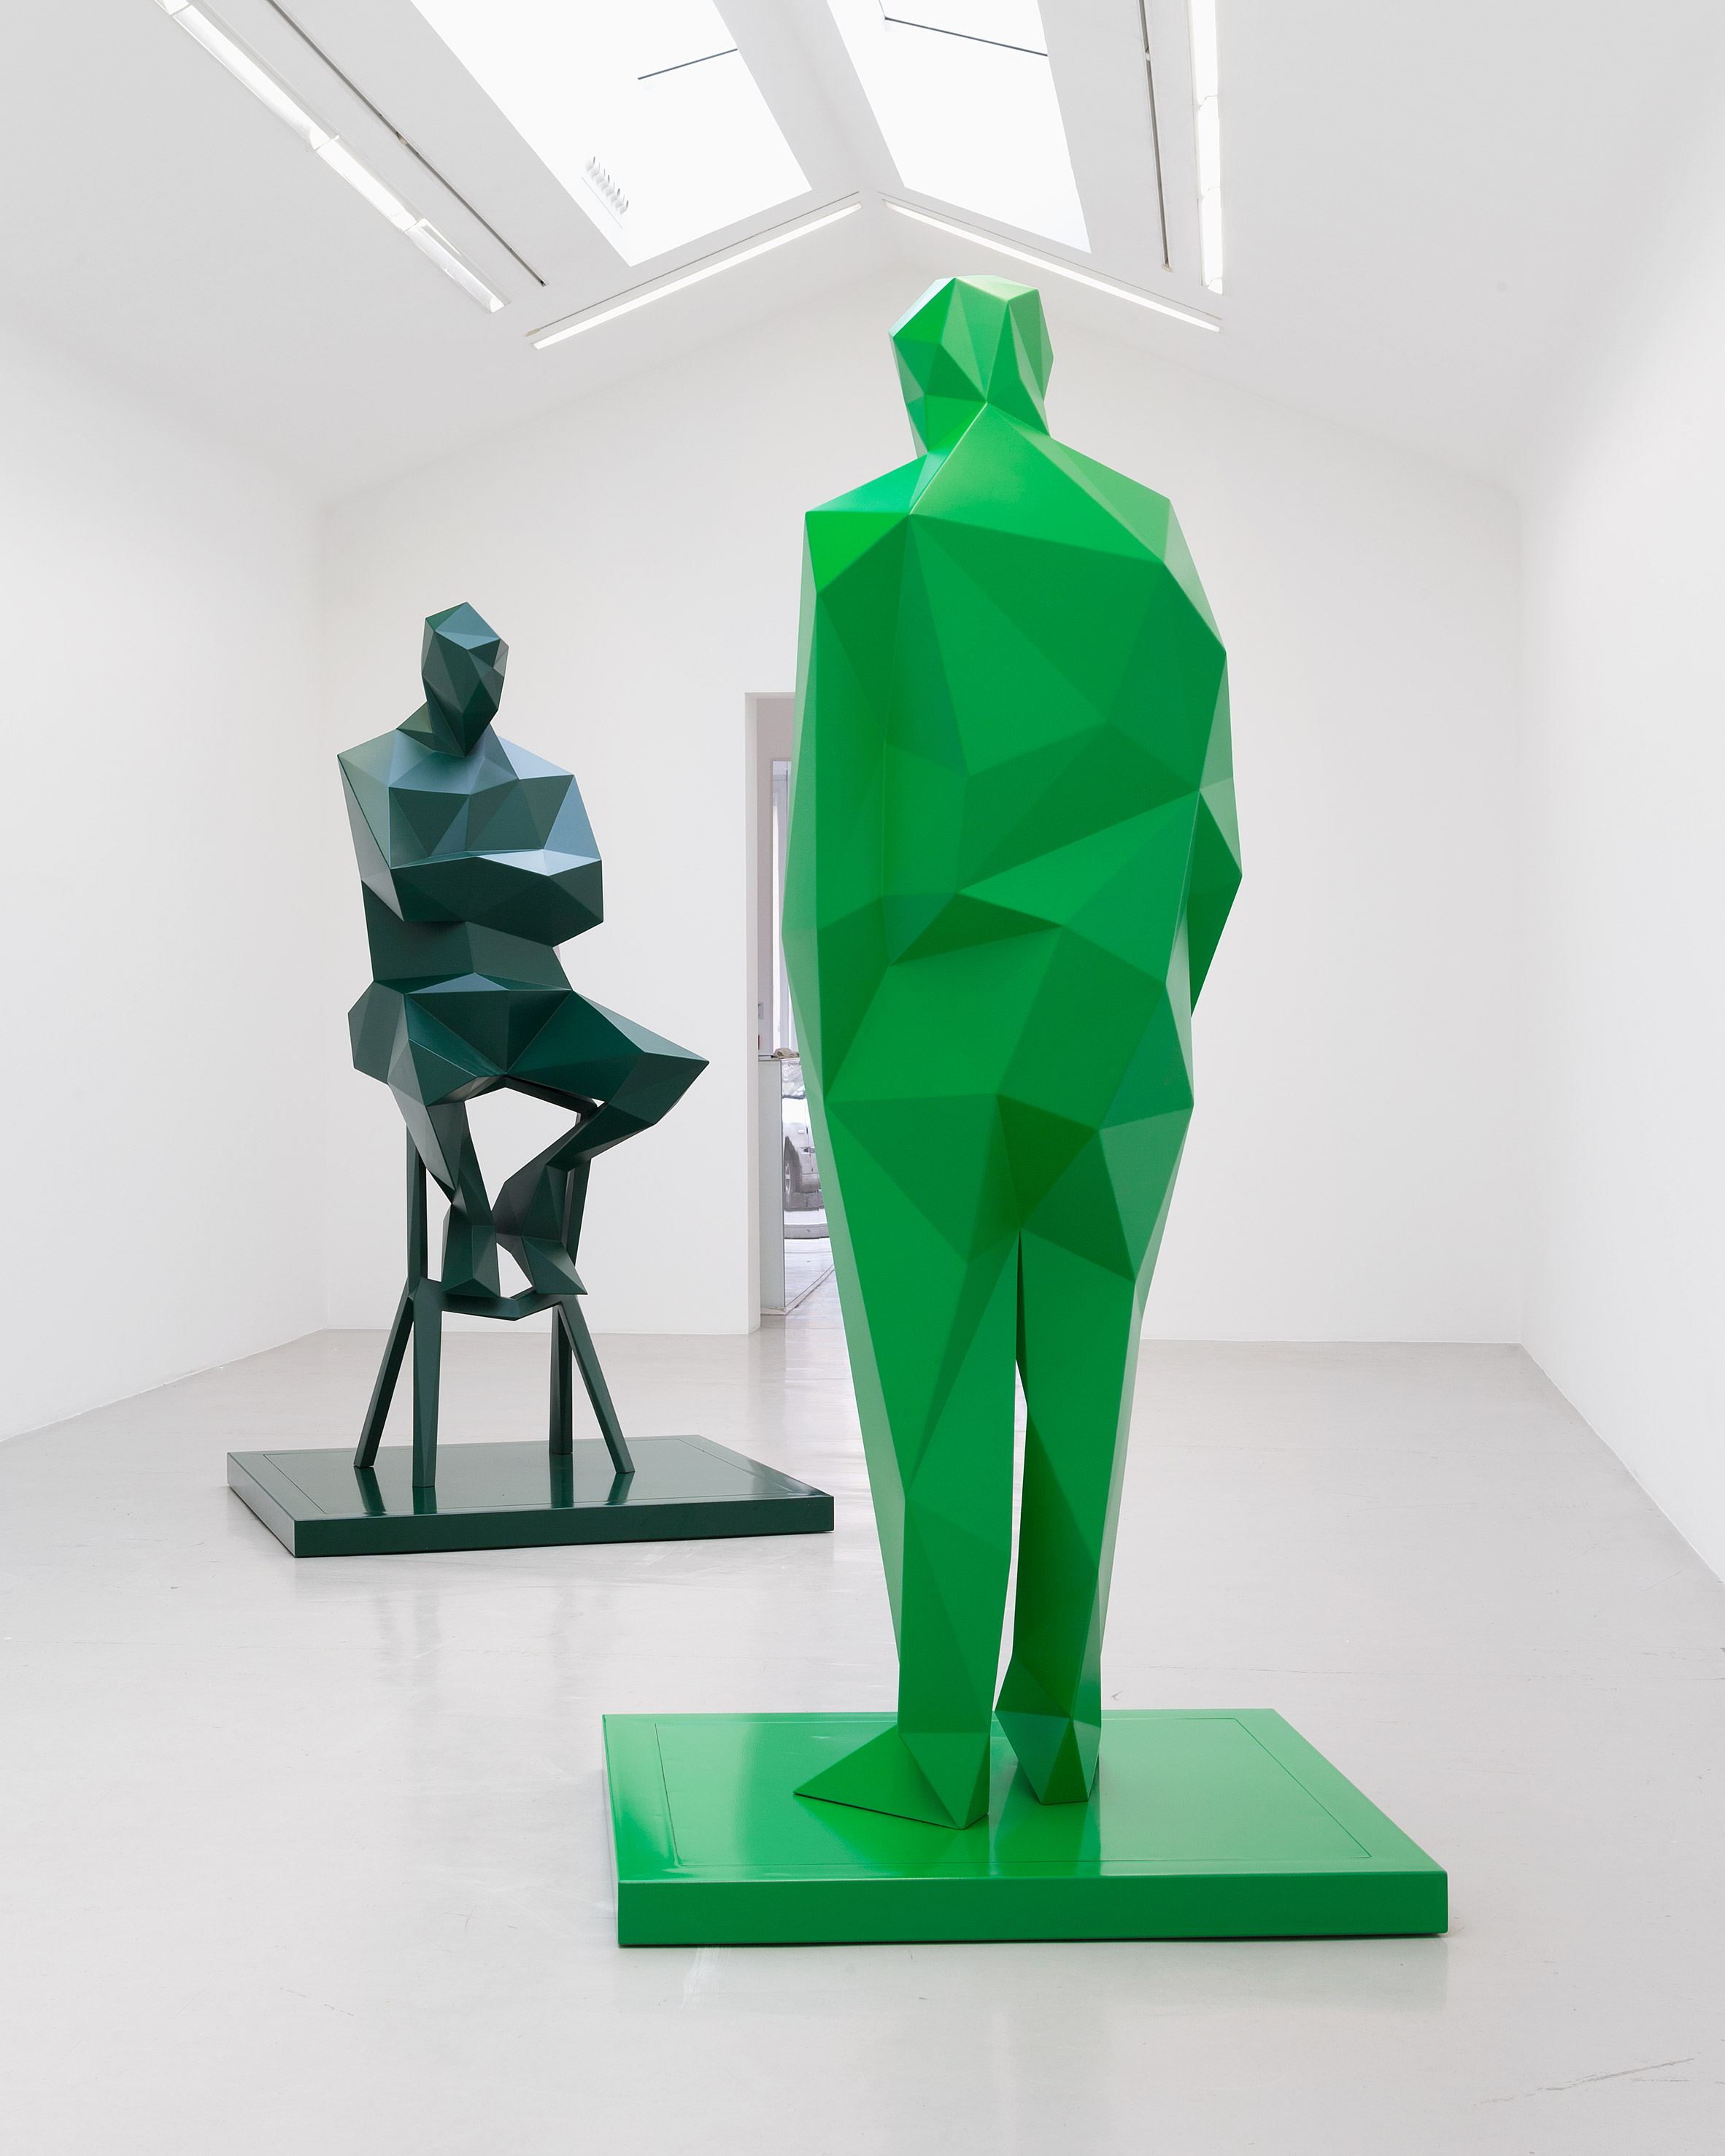 Sculptures of Richard Rogers and Renzo Piano will sit opposite the Centre Pompidou